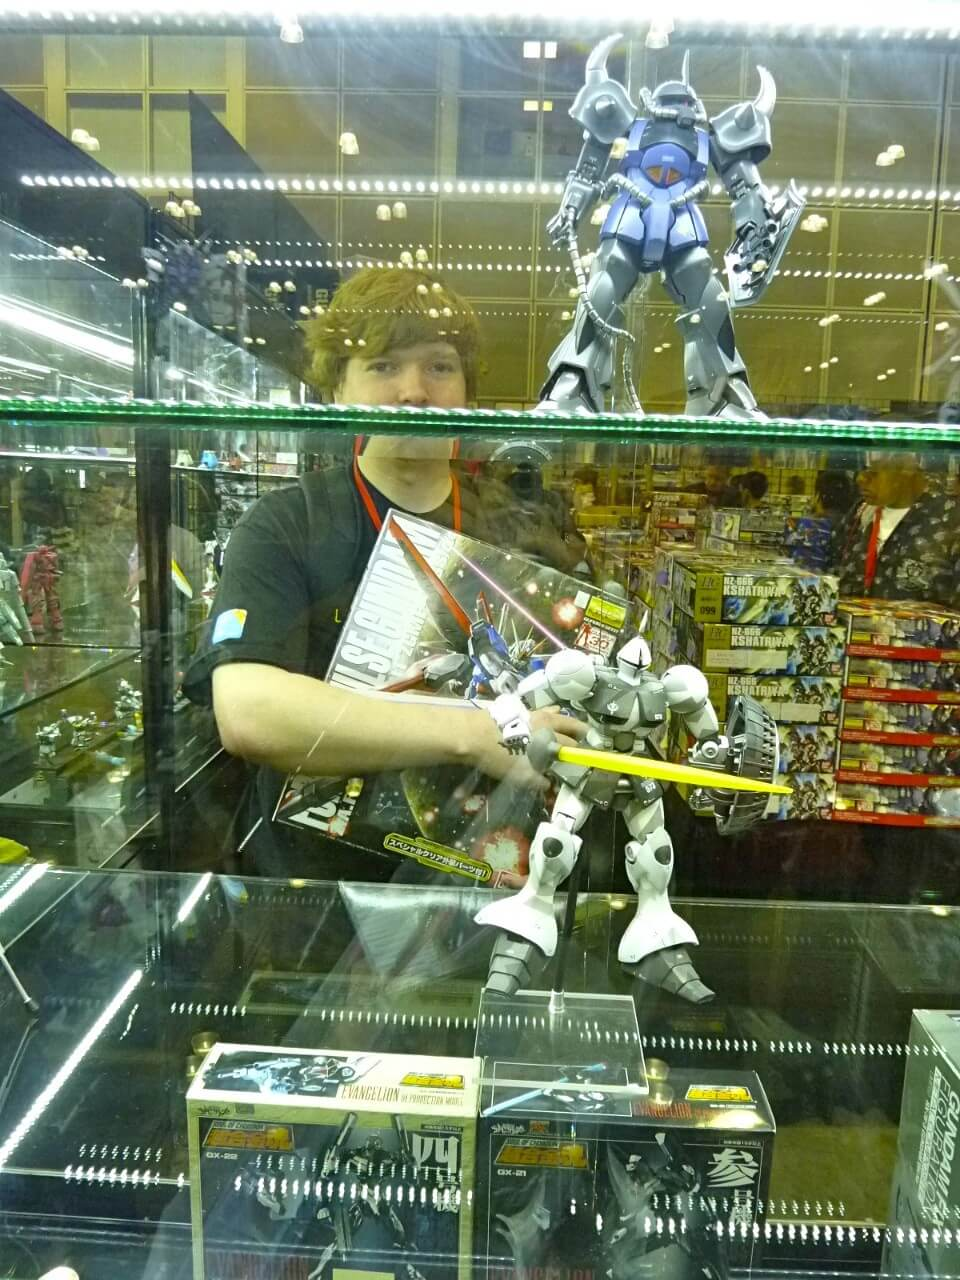 Andrew stuck in Gundam jail